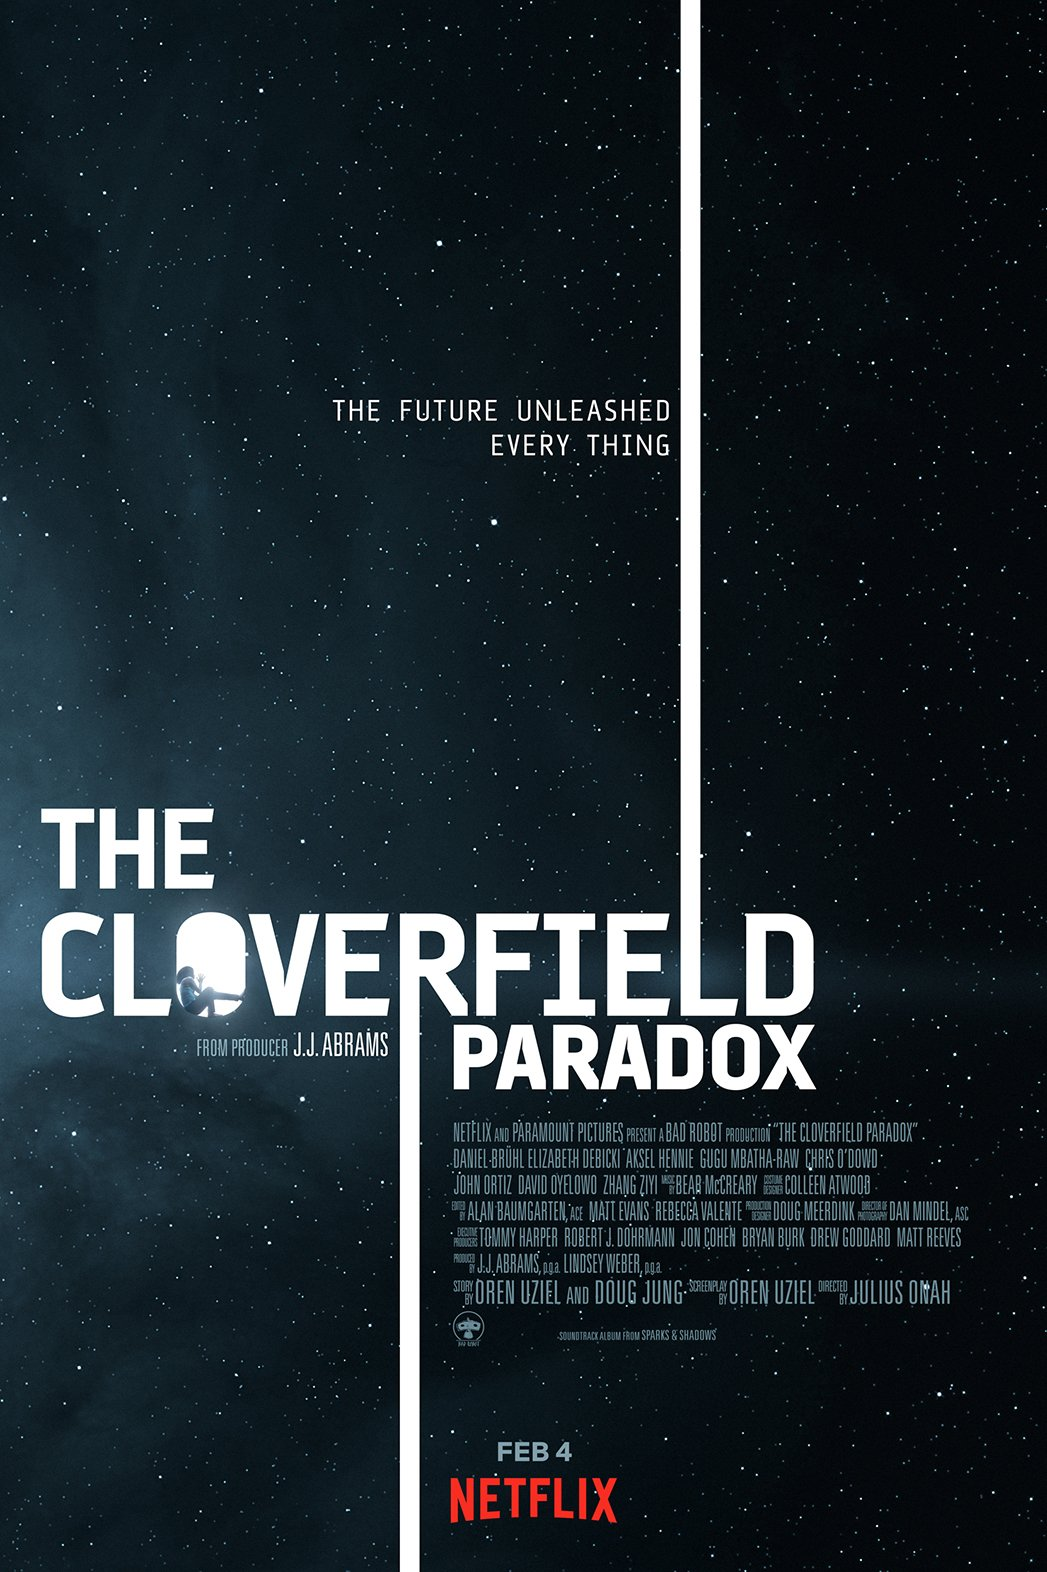 The Cloverfield Paradox tráiler.